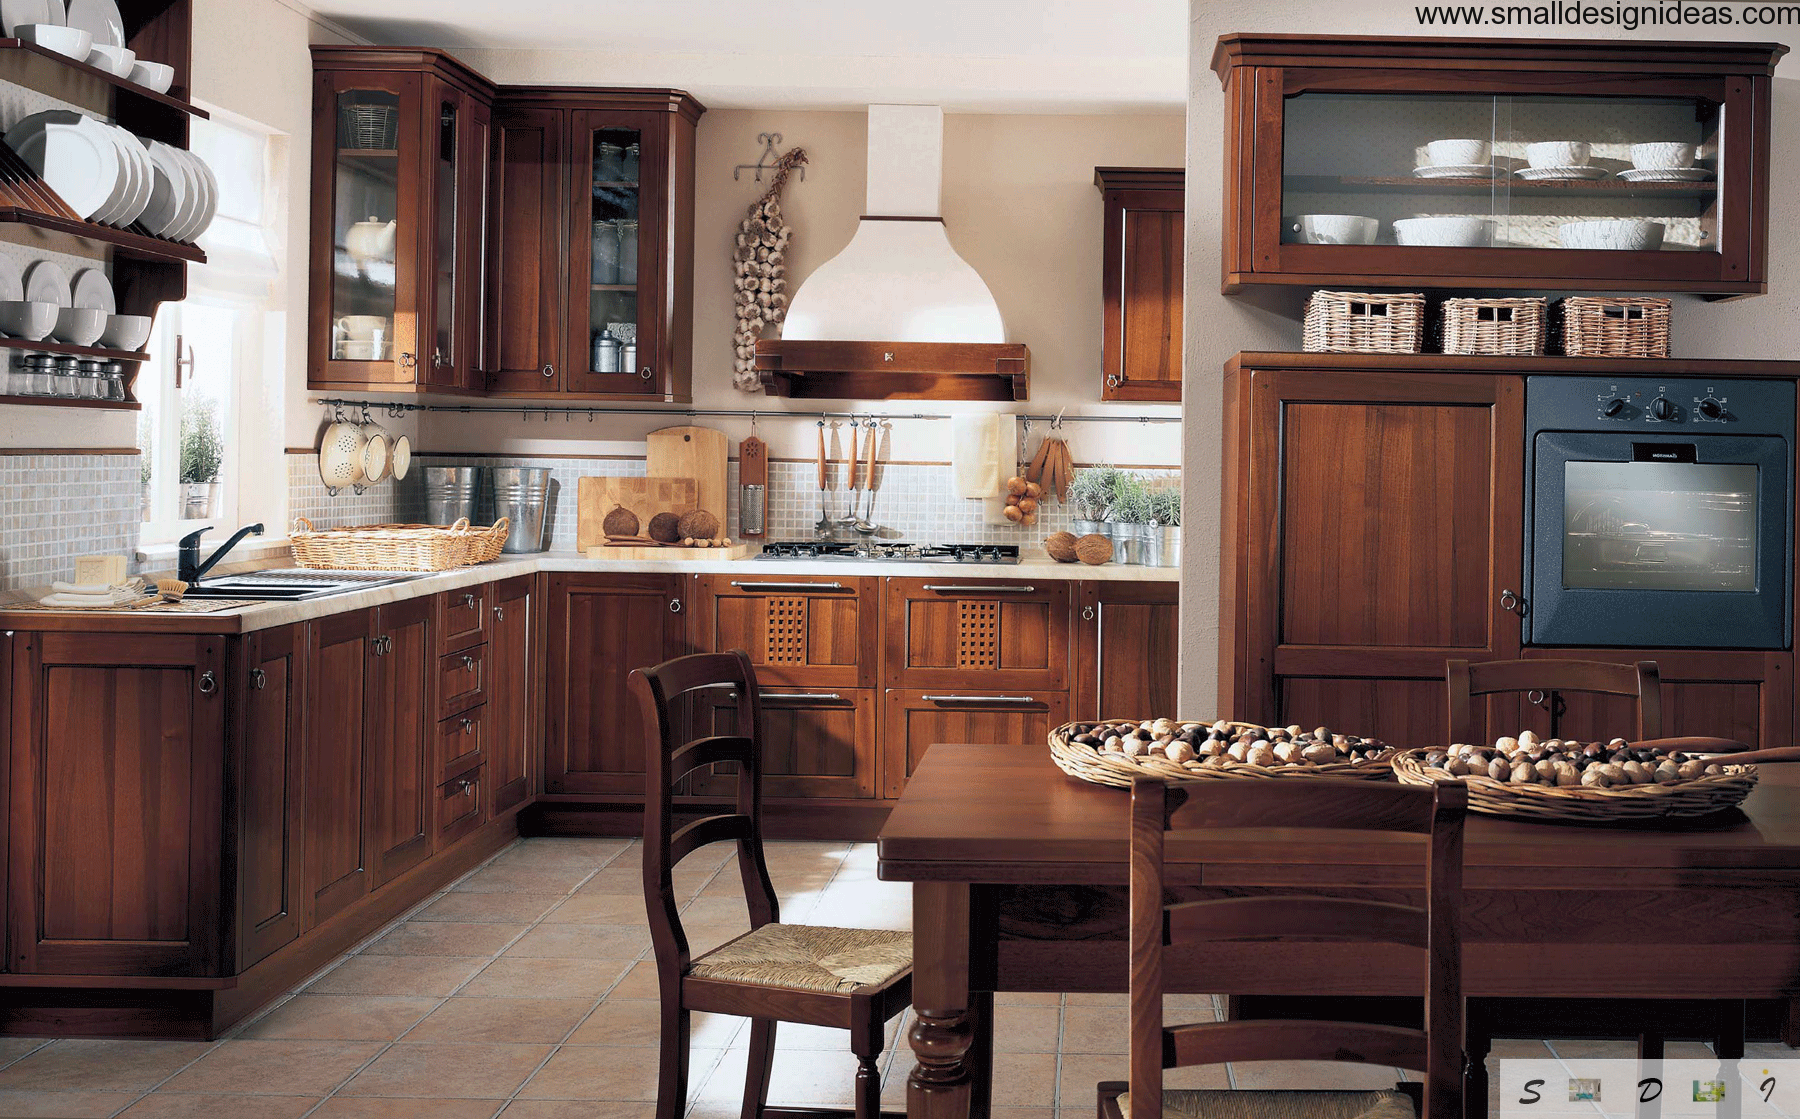 Ordinaire Italian Kitchen Style